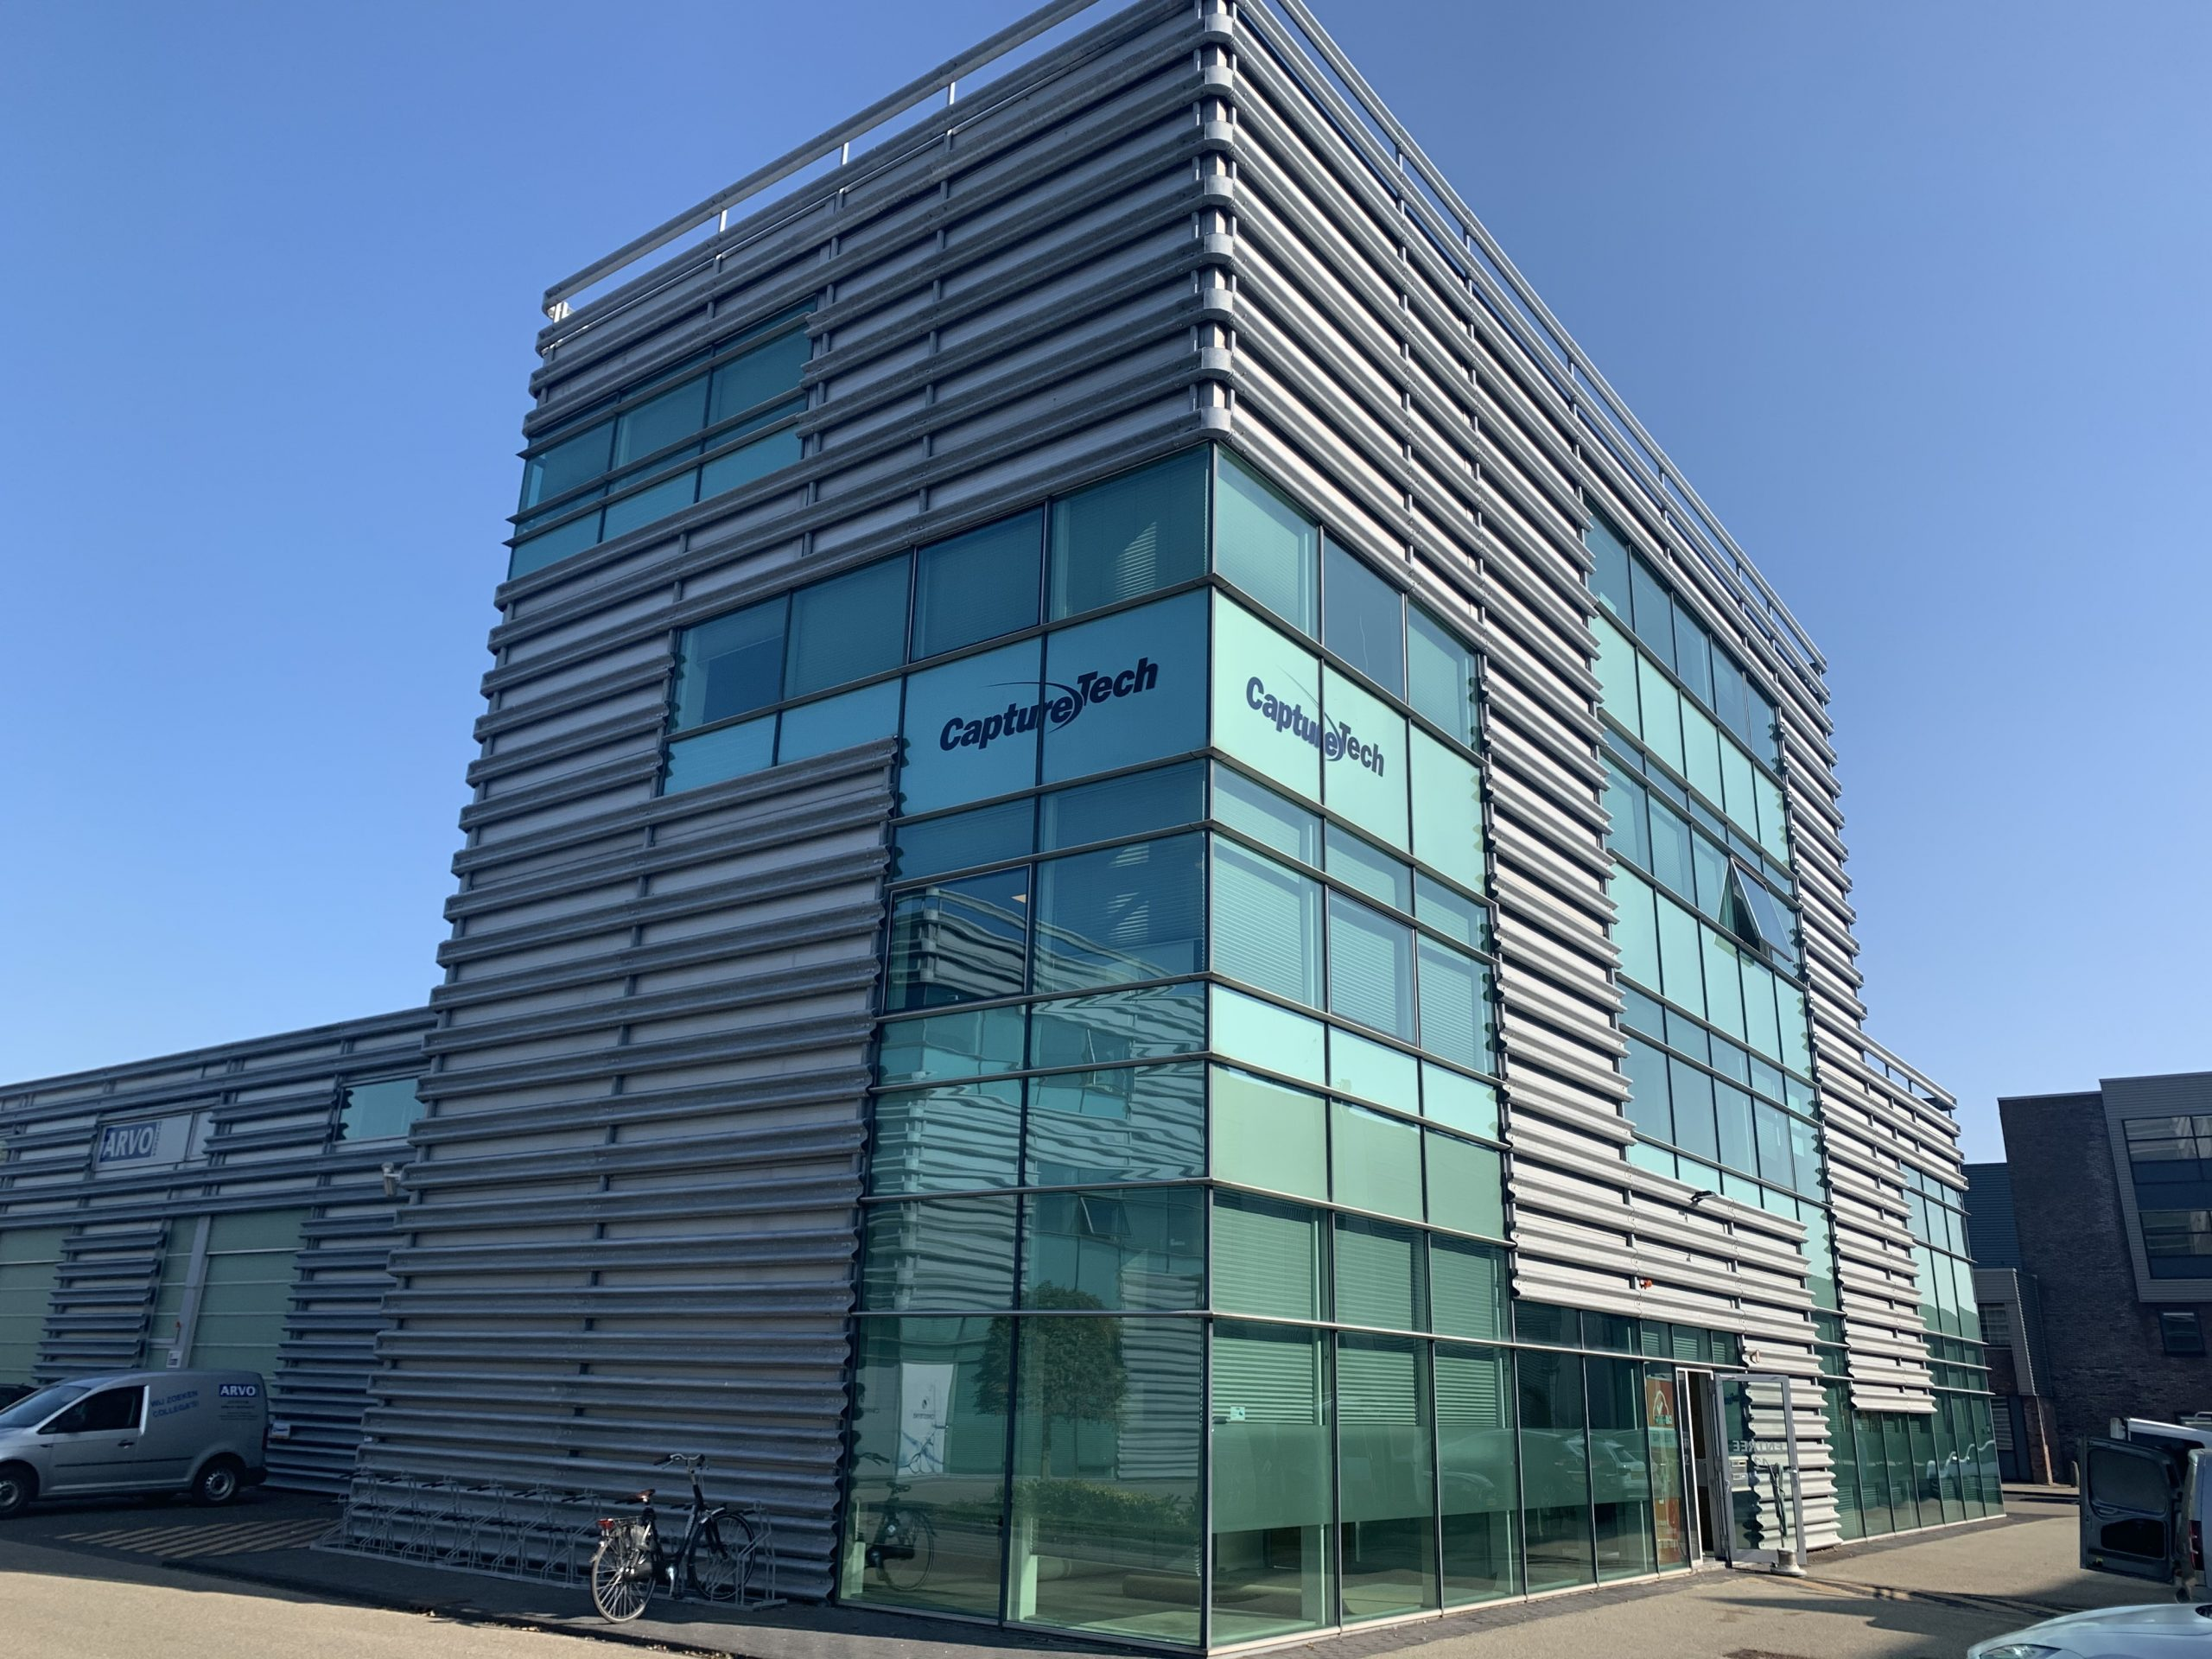 Picture of the new CaptureTech office building